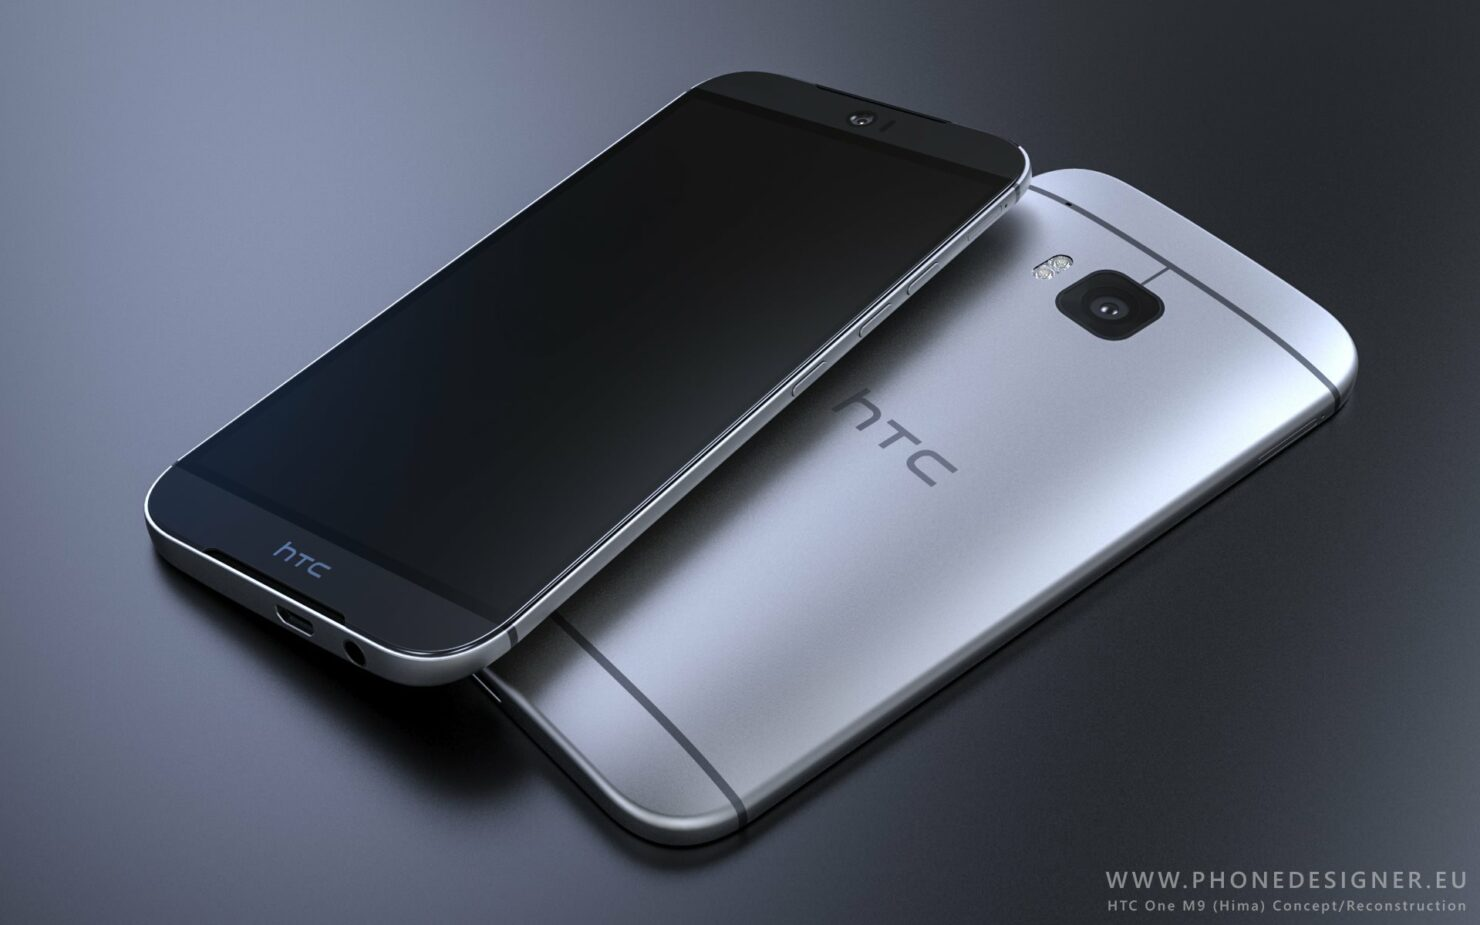 htc-one-m9-renders-this-phone-is-on-fire-4